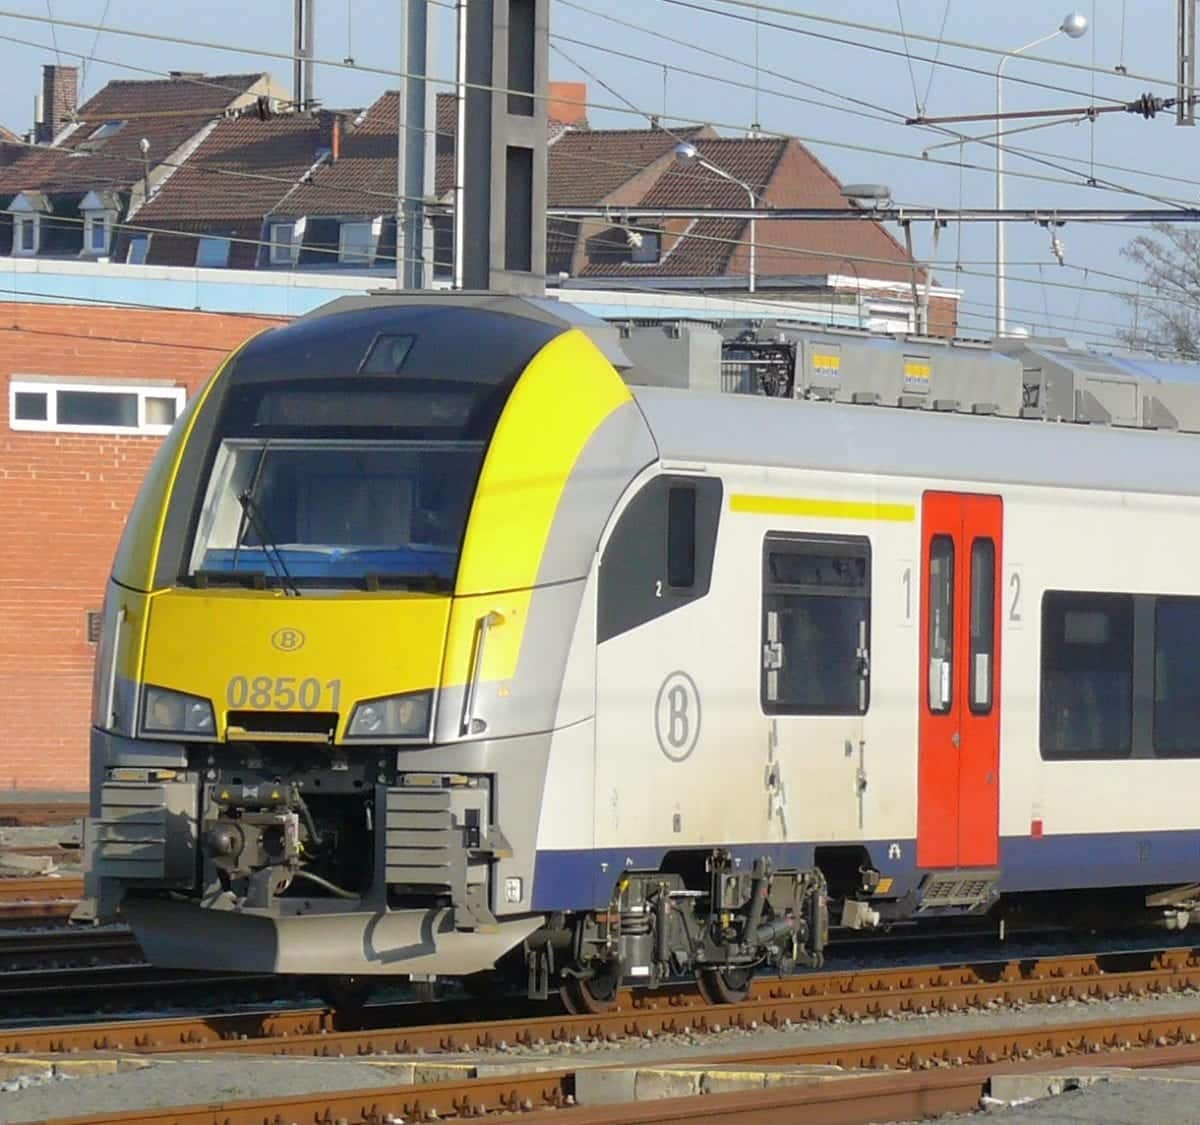 Desiro train of the NMBS/SNCB on the move